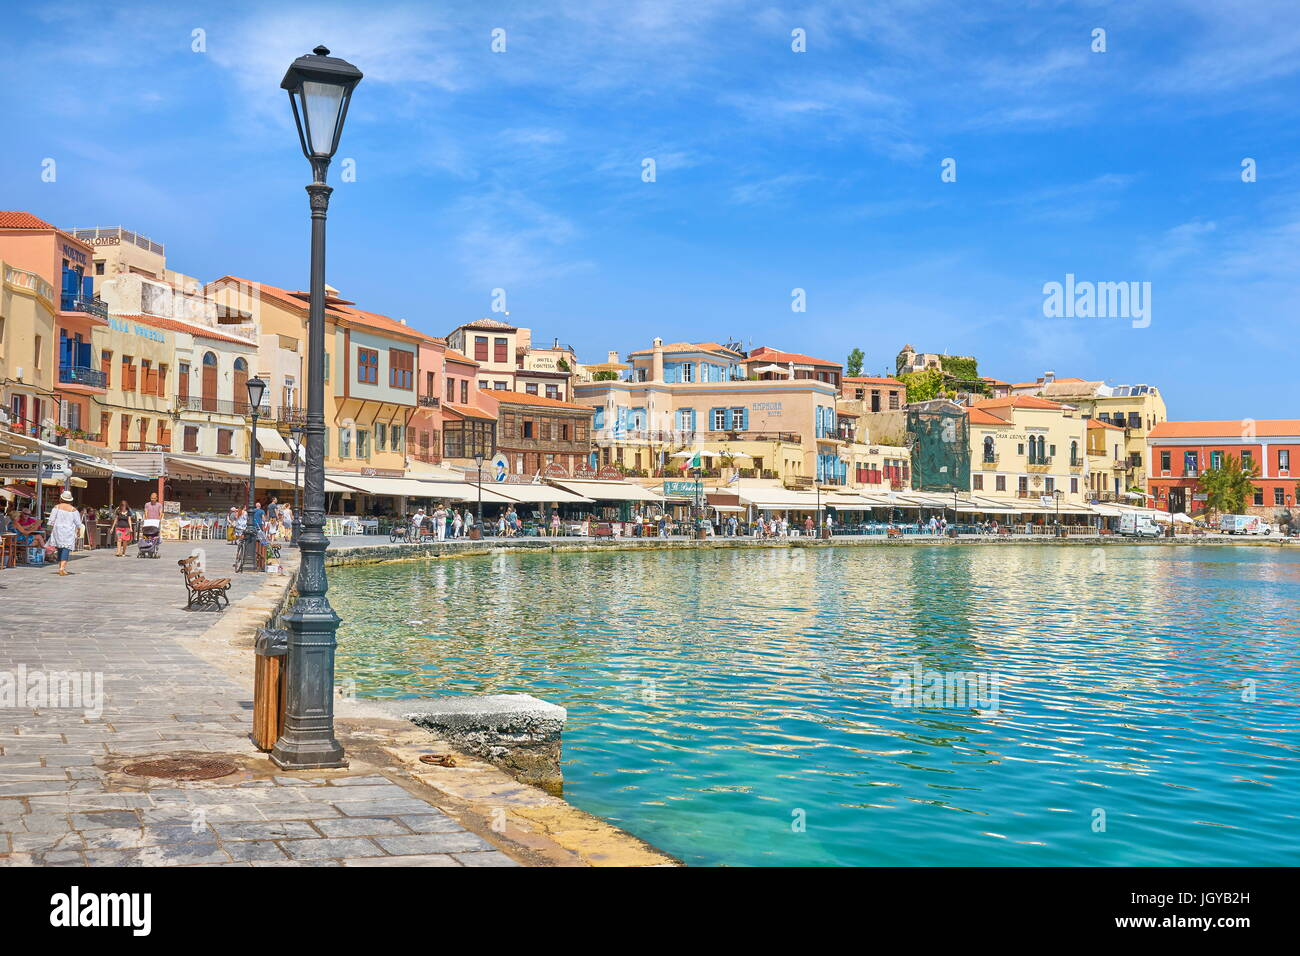 Venetian harbour of Chania old town, Crete Island, Greece - Stock Image